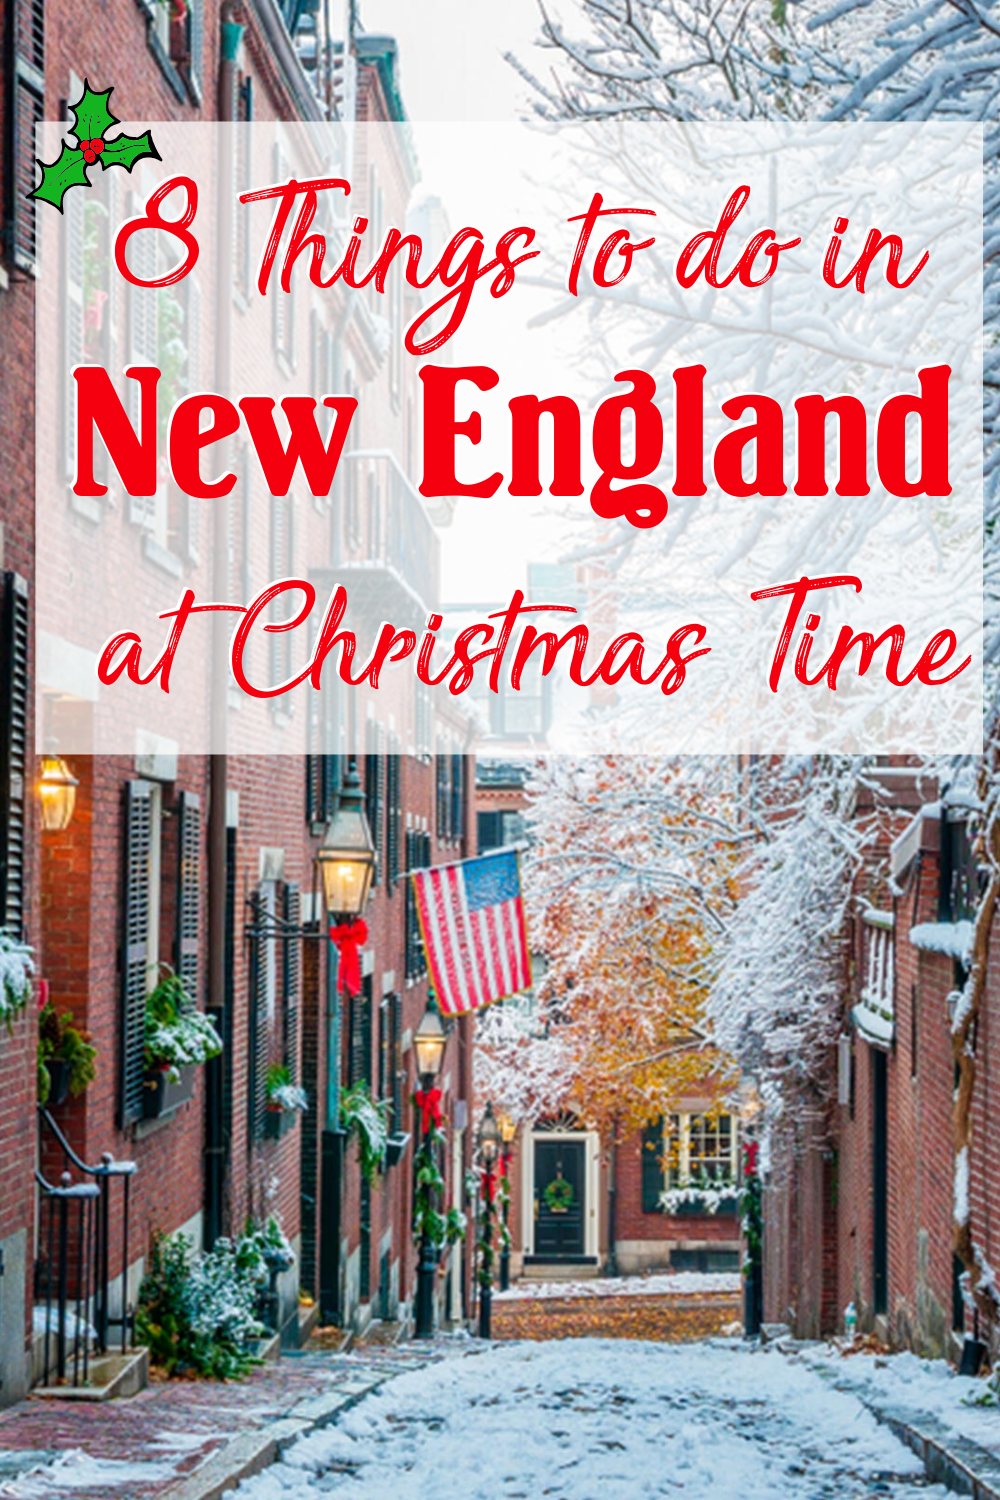 8 Things to do in New England at Christmas Time